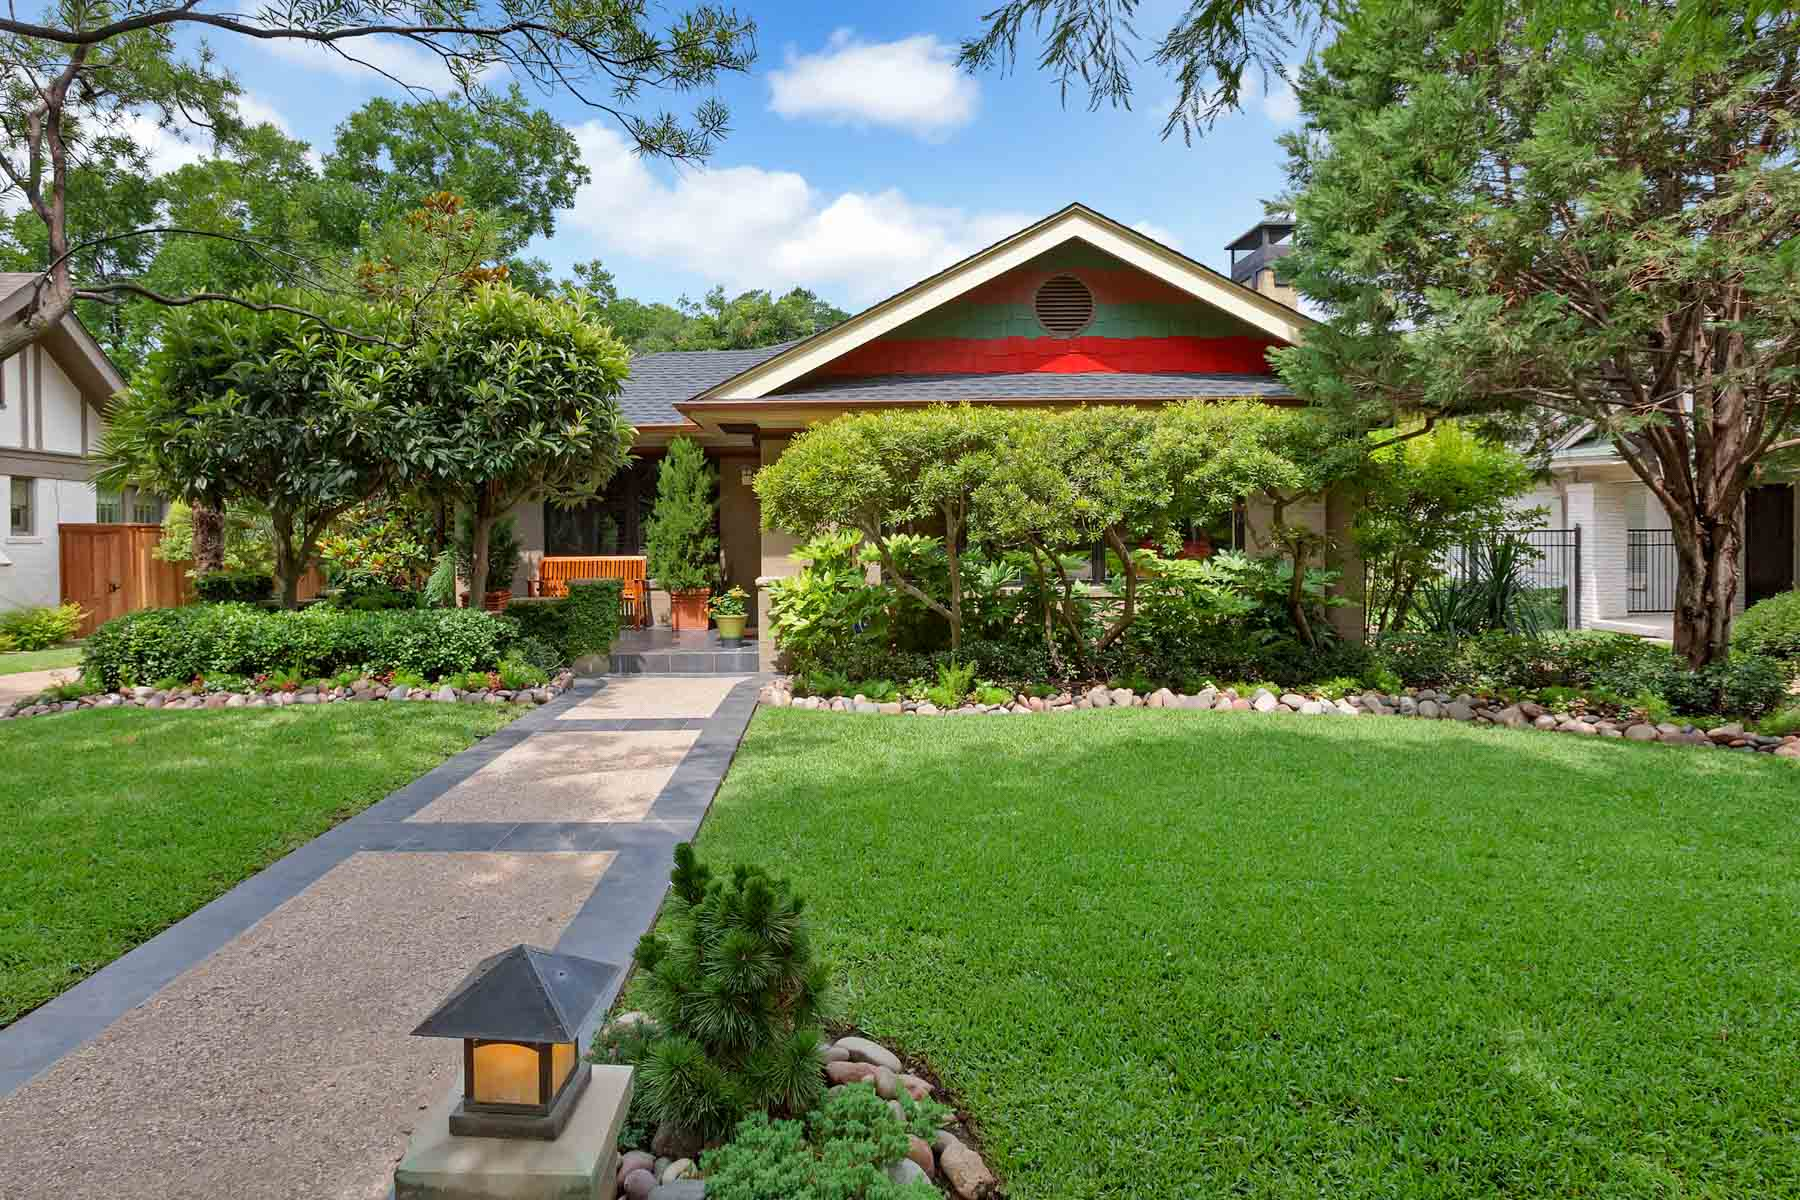 Single Family Home for Sale at Extraordinary TCU Bungalow 2542 Greene Avenue Fort Worth, Texas, 76109 United States